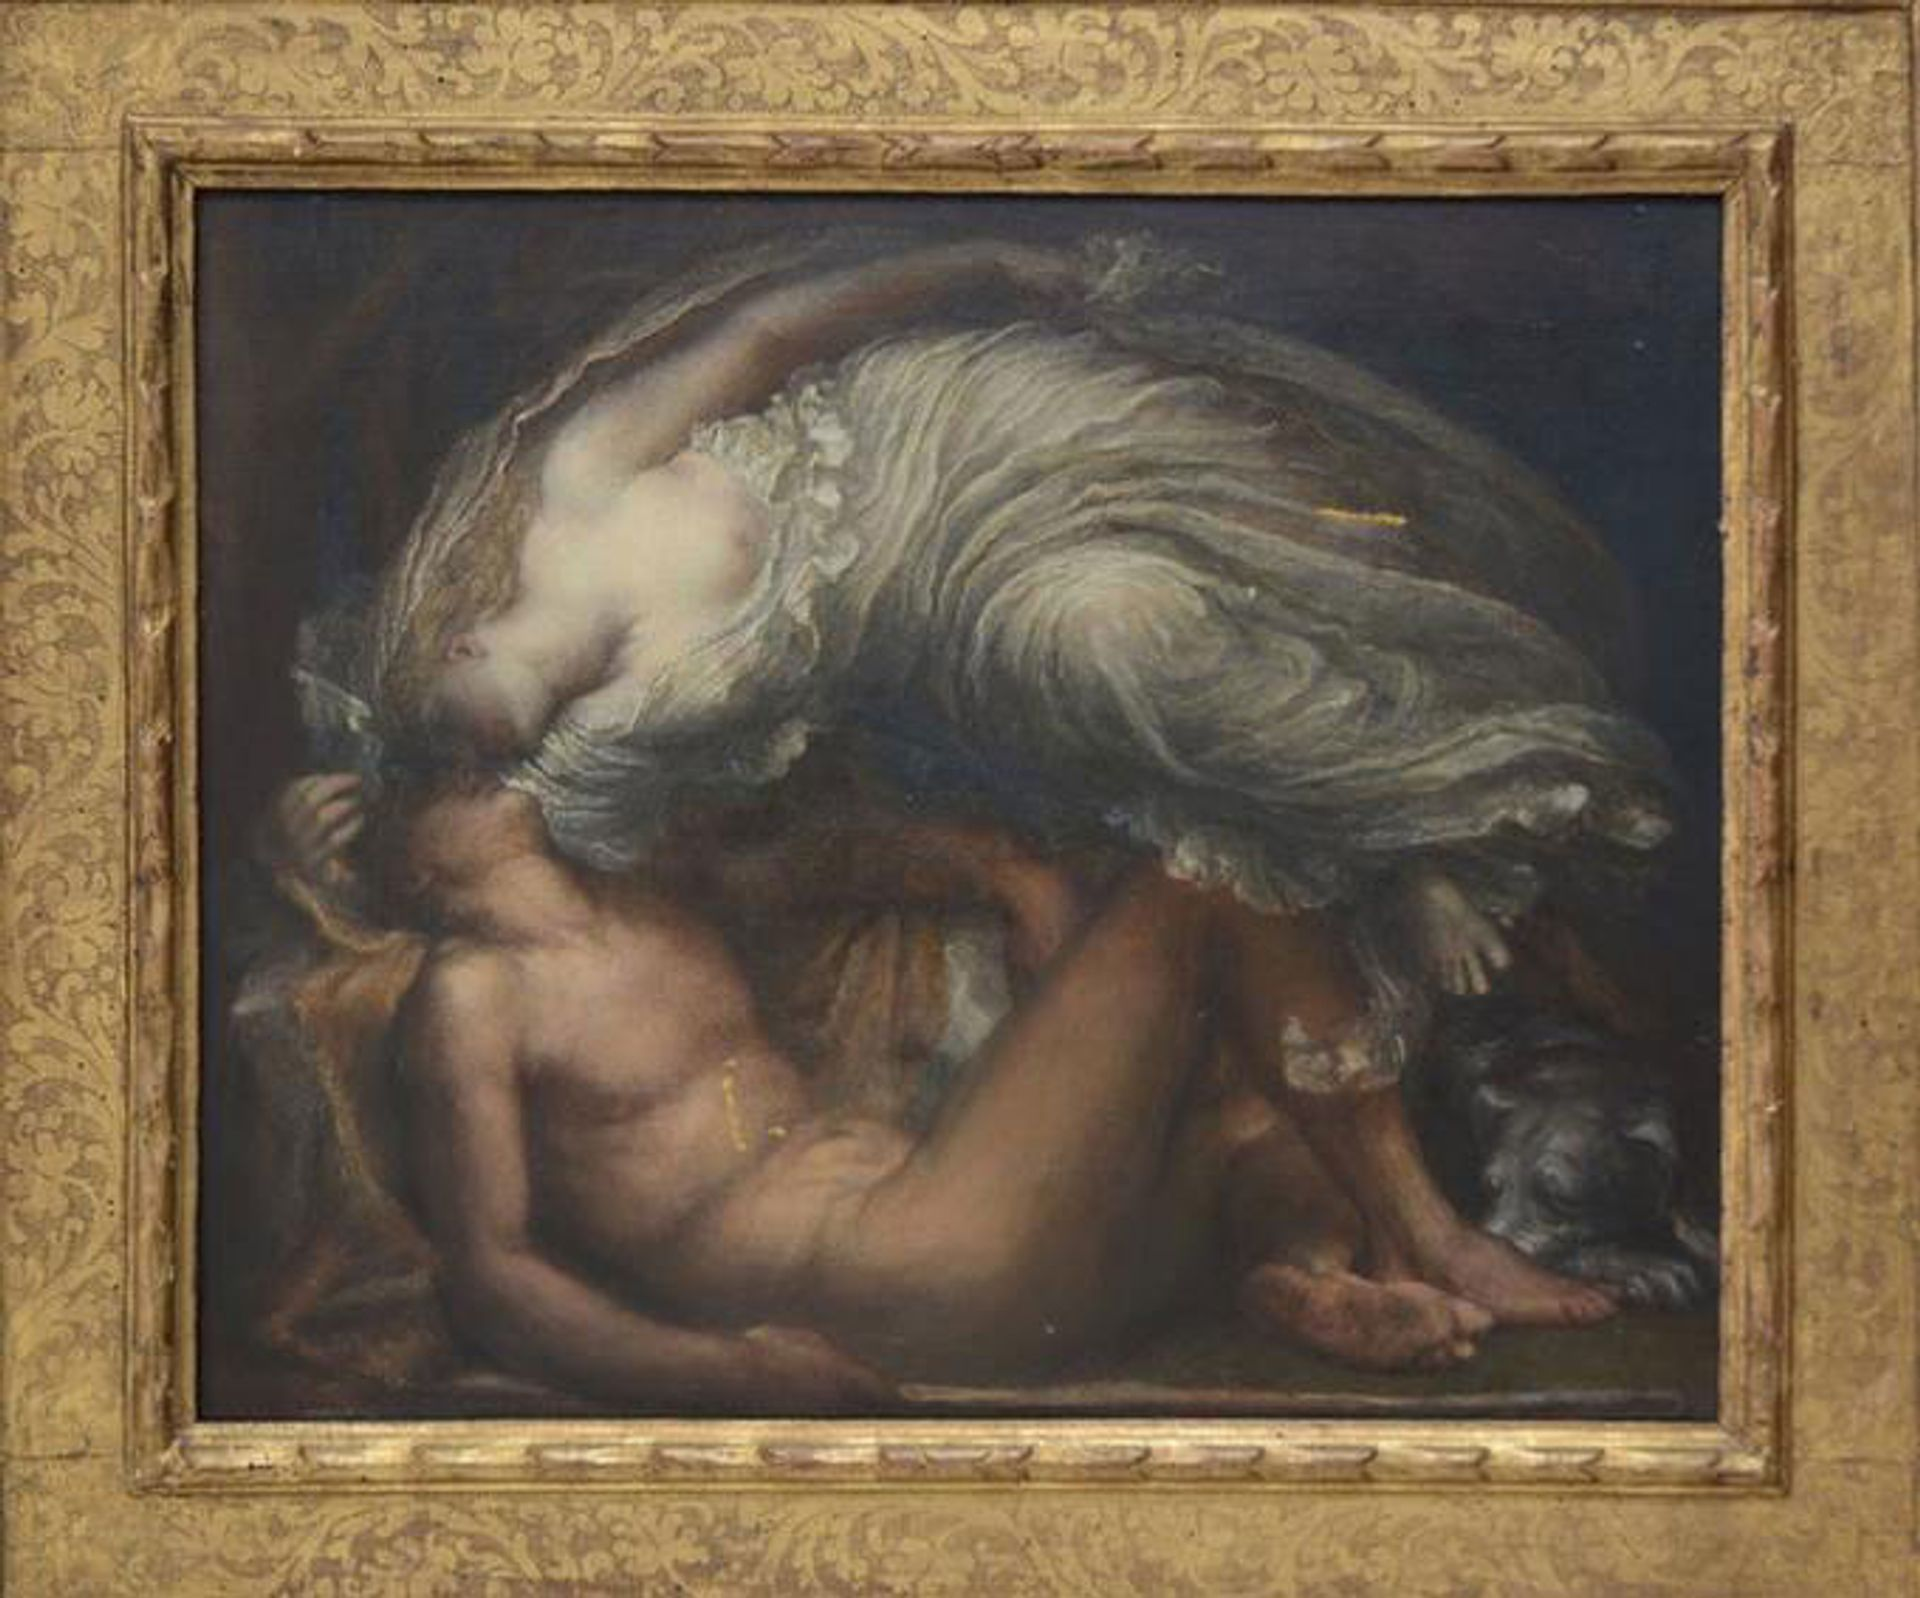 George Frederic Watts's Endimyon (1872) was among the works stolen from the Bulmers Avon and Somerset Police/PA